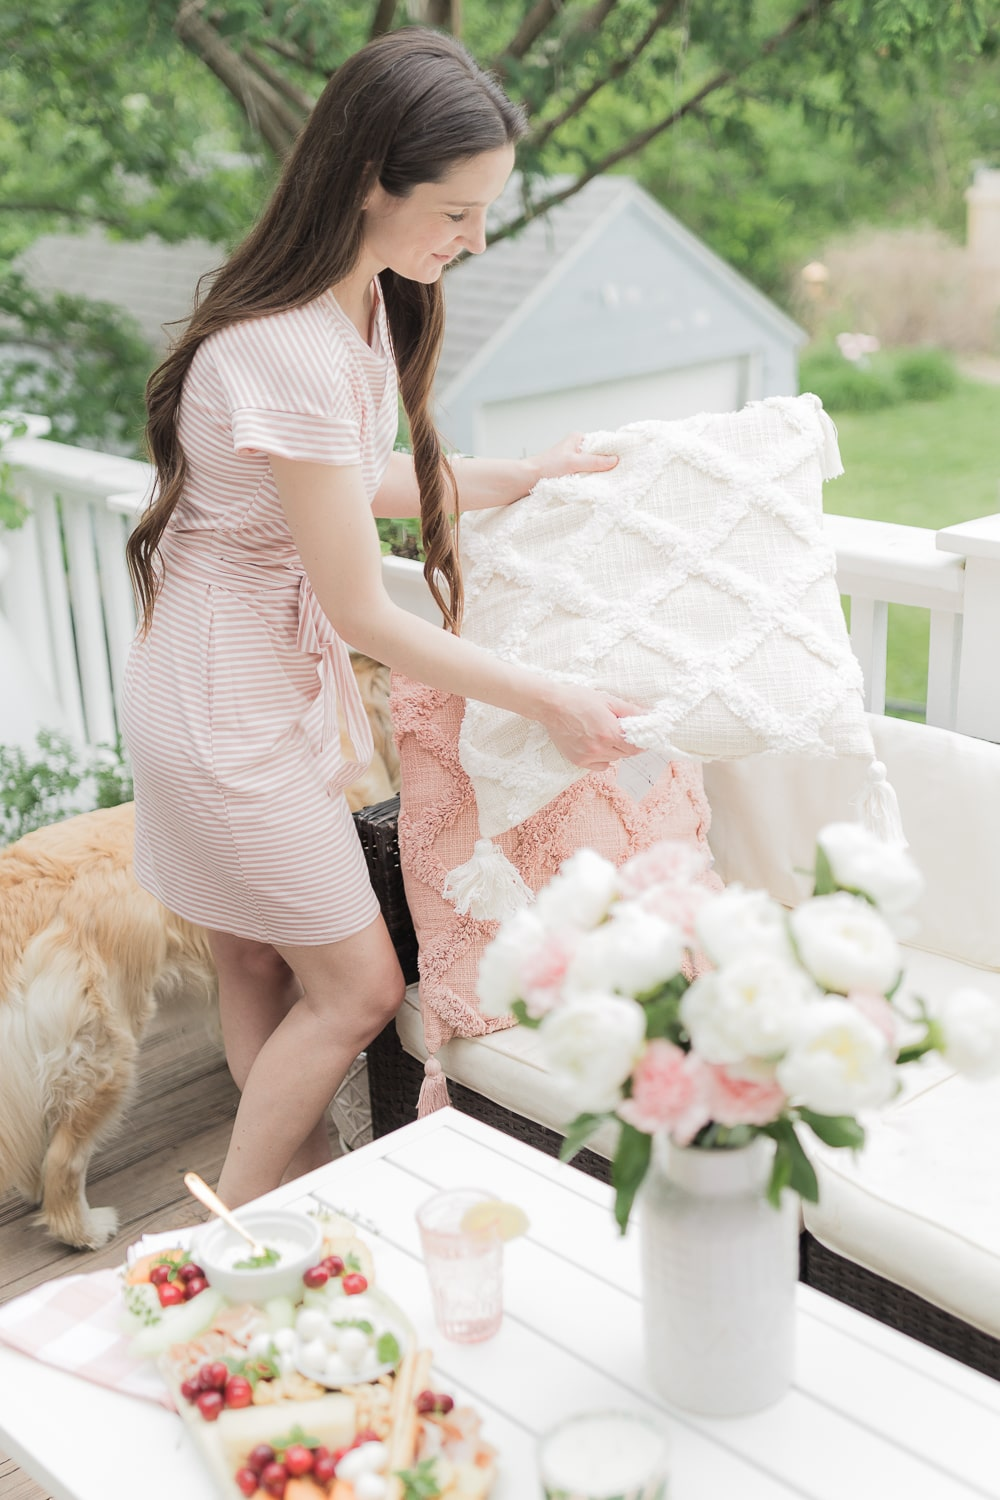 Blogger Stephanie Ziajka shares why these Walmart tufted trellis pillows are one of her top summer entertaining essentials from Walmart on Diary of a Debutante